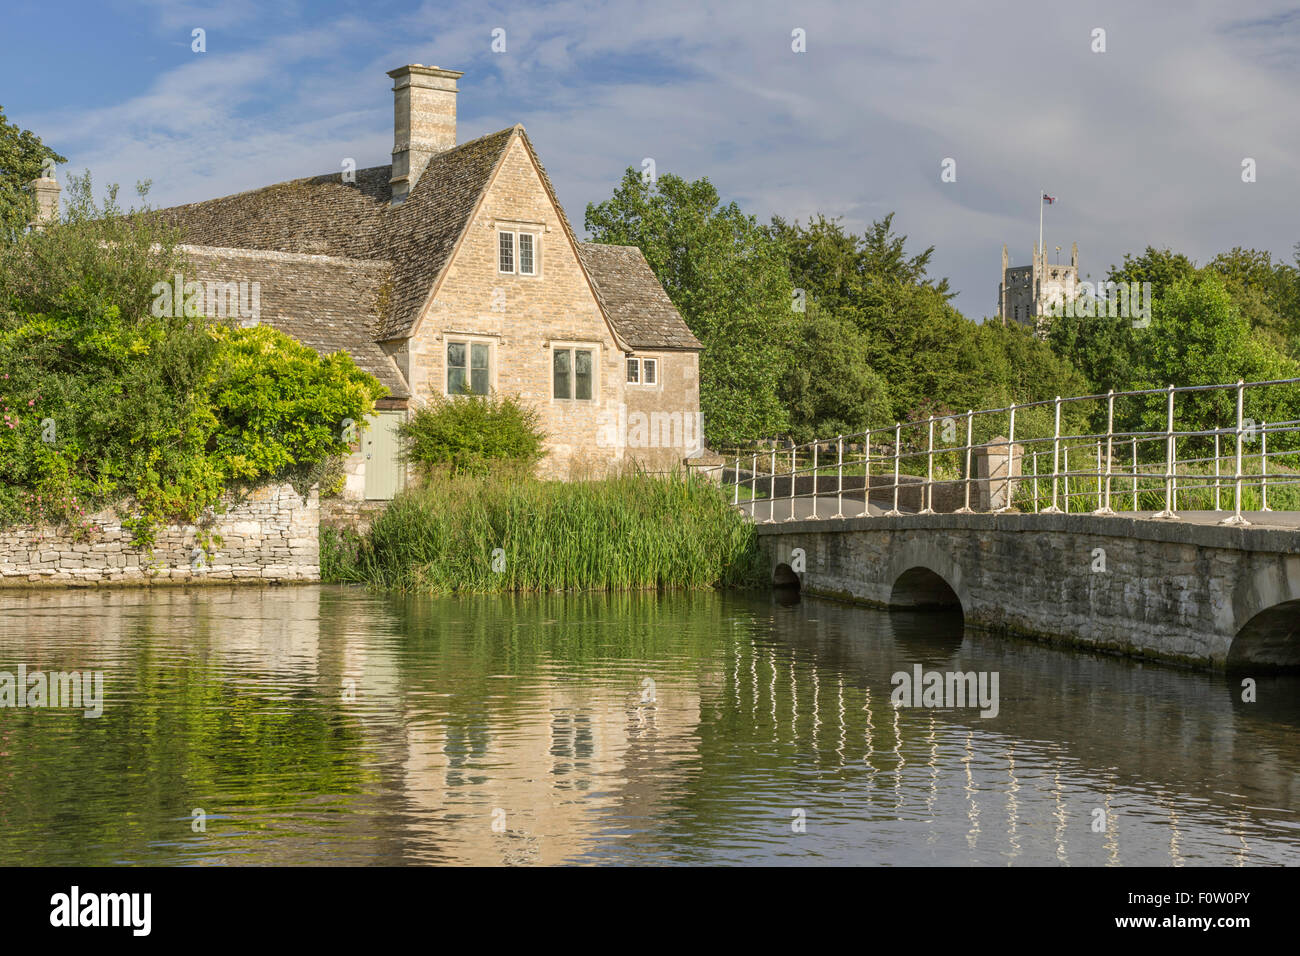 Fairford Mill on the River Coln, in the Cotswold market town of Fairford, Gloucestershire, England, UK - Stock Image